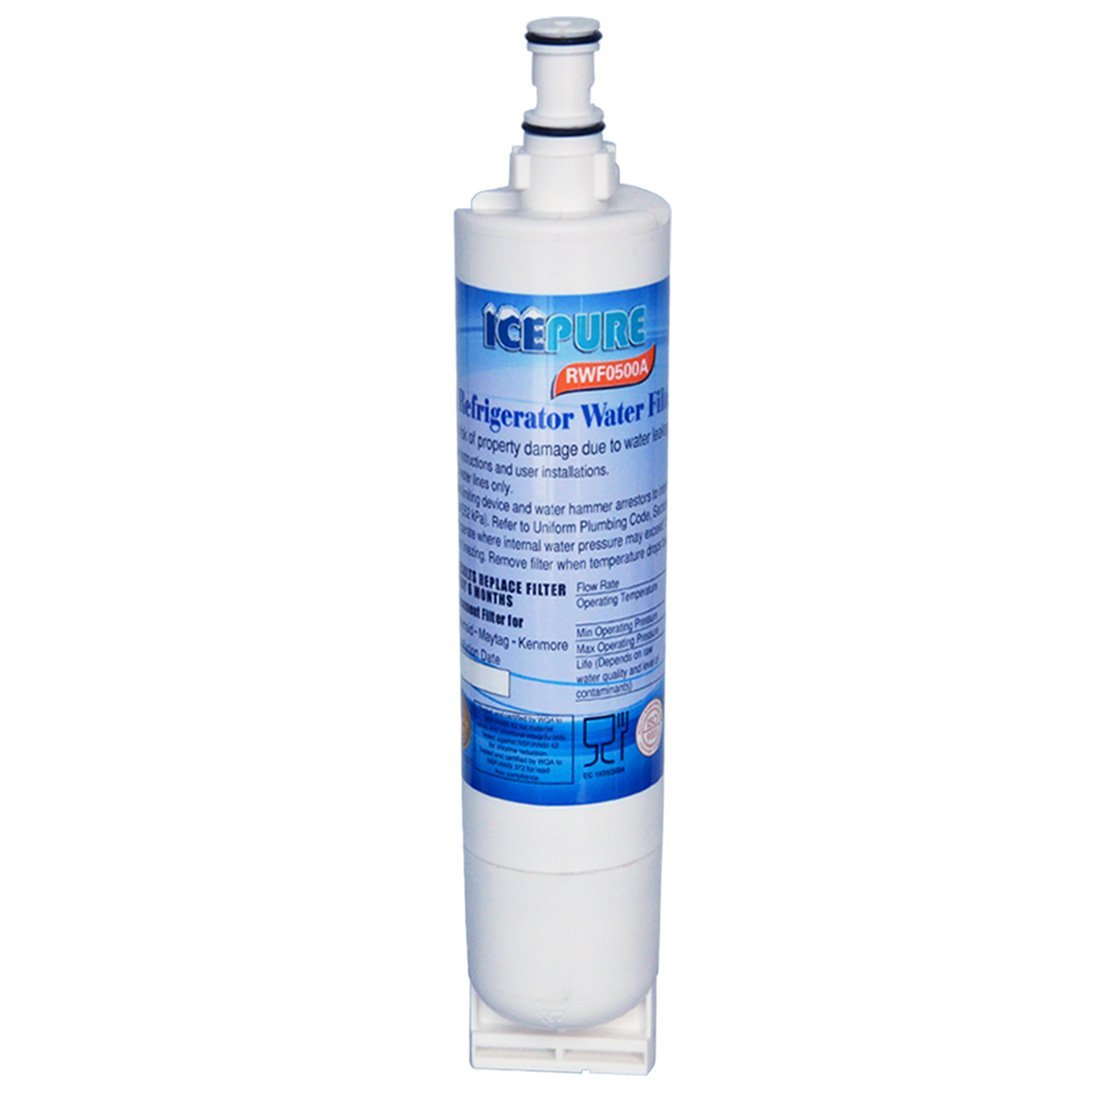 Icepure 4396508 Replacement Refrigerator water filter for Whirlpool 4396508, 4396510,Filter 5,EDR5RXD1,NL240V,WFL400, Refrigerator Water Filter,1PACK